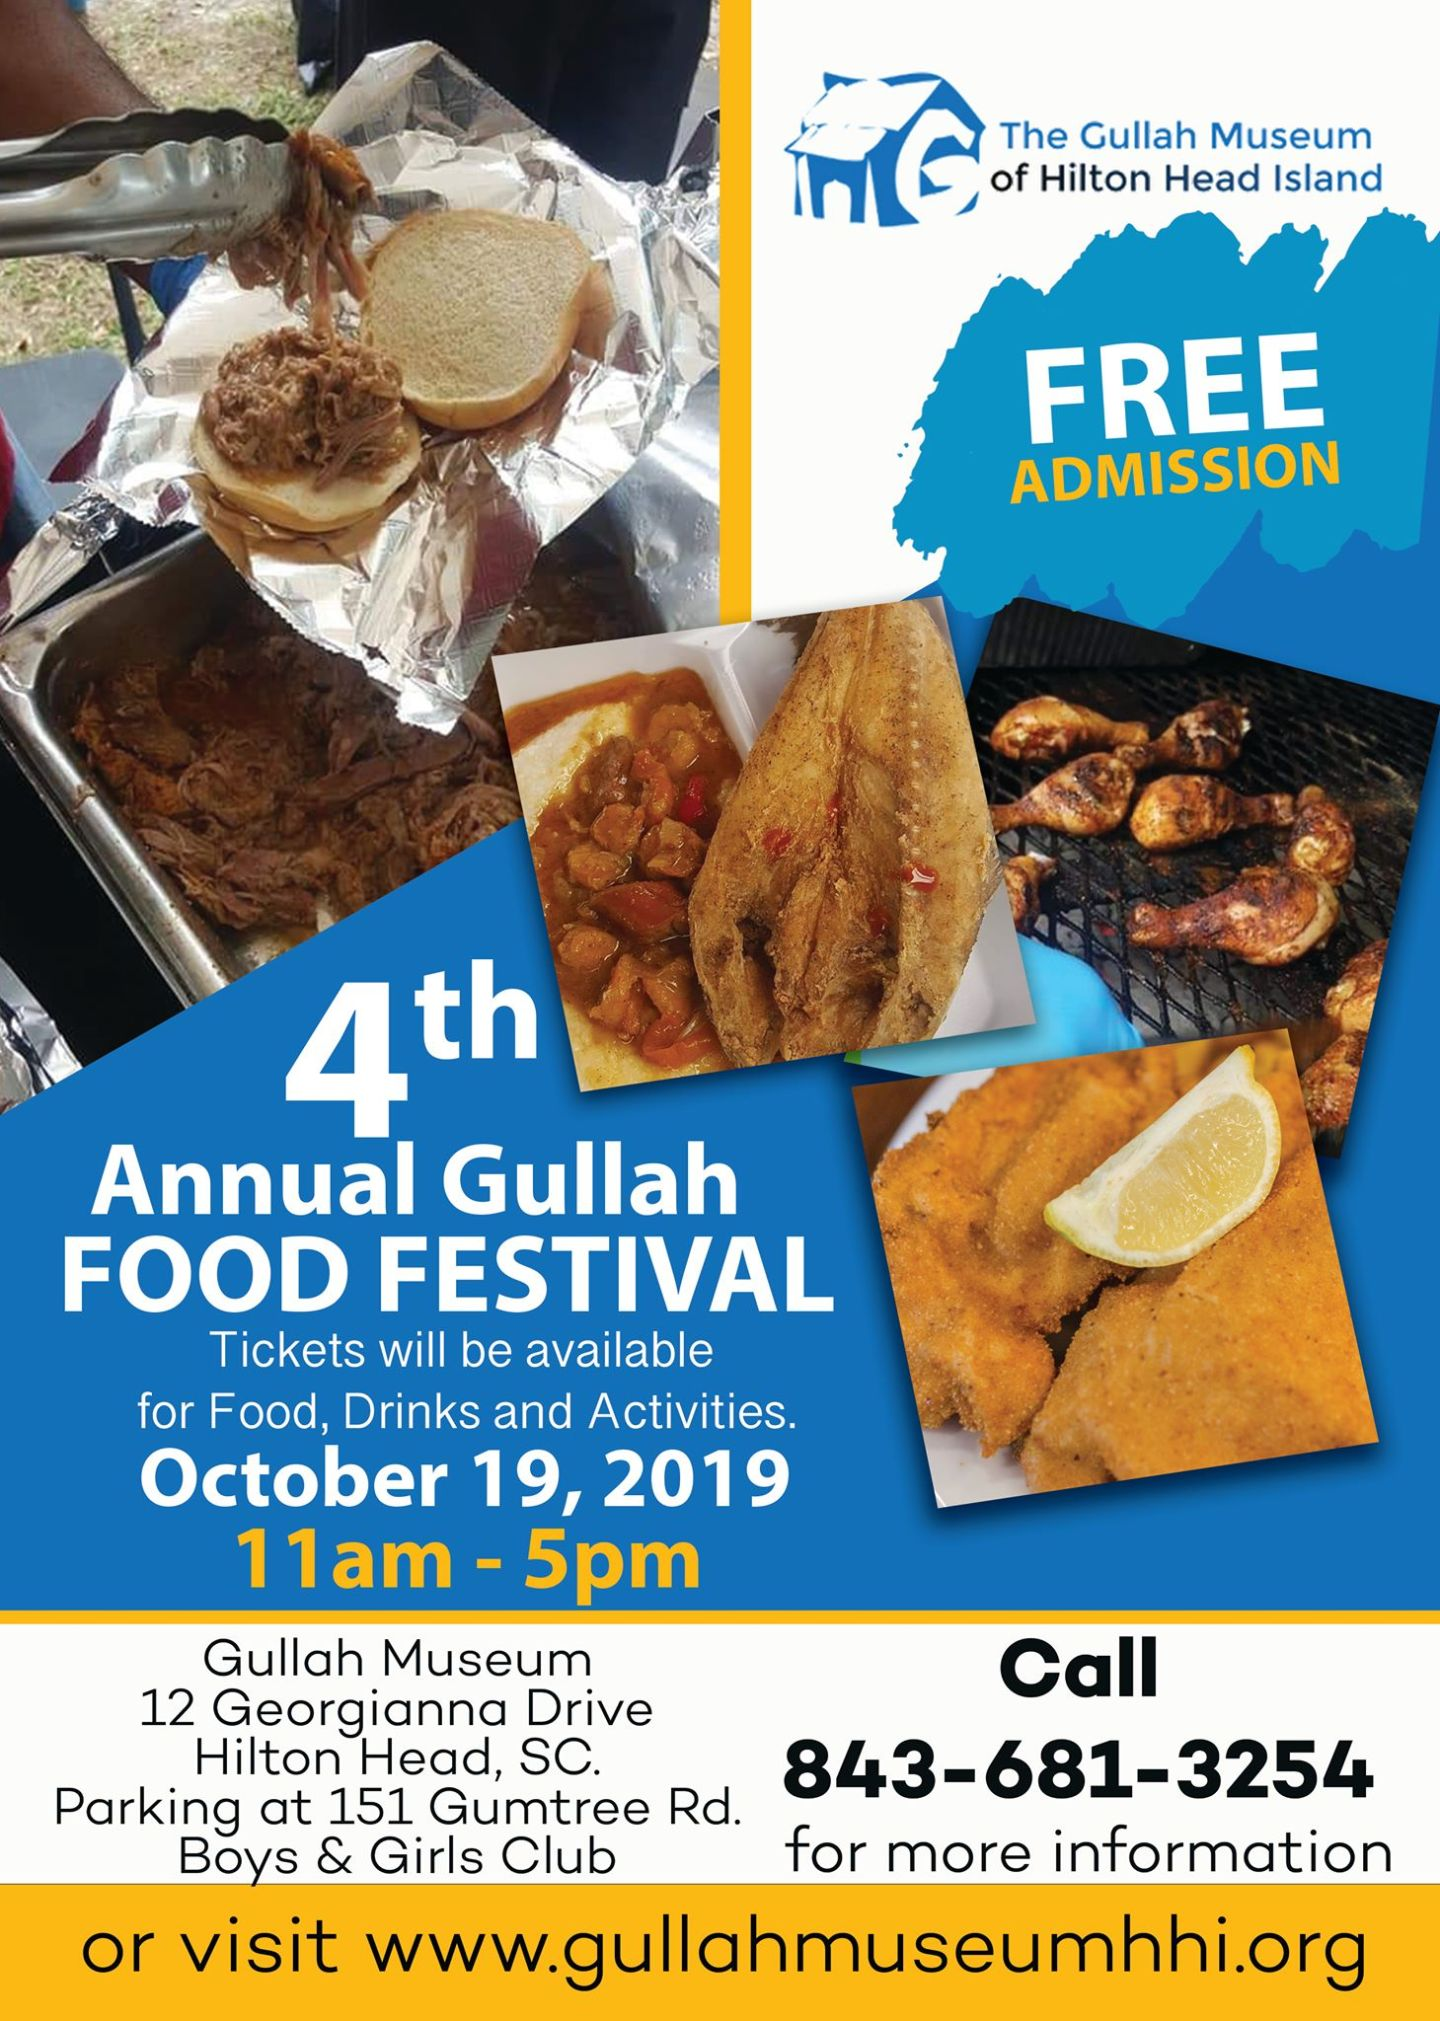 Gullah Food Festival in Hilton Head Island, SC